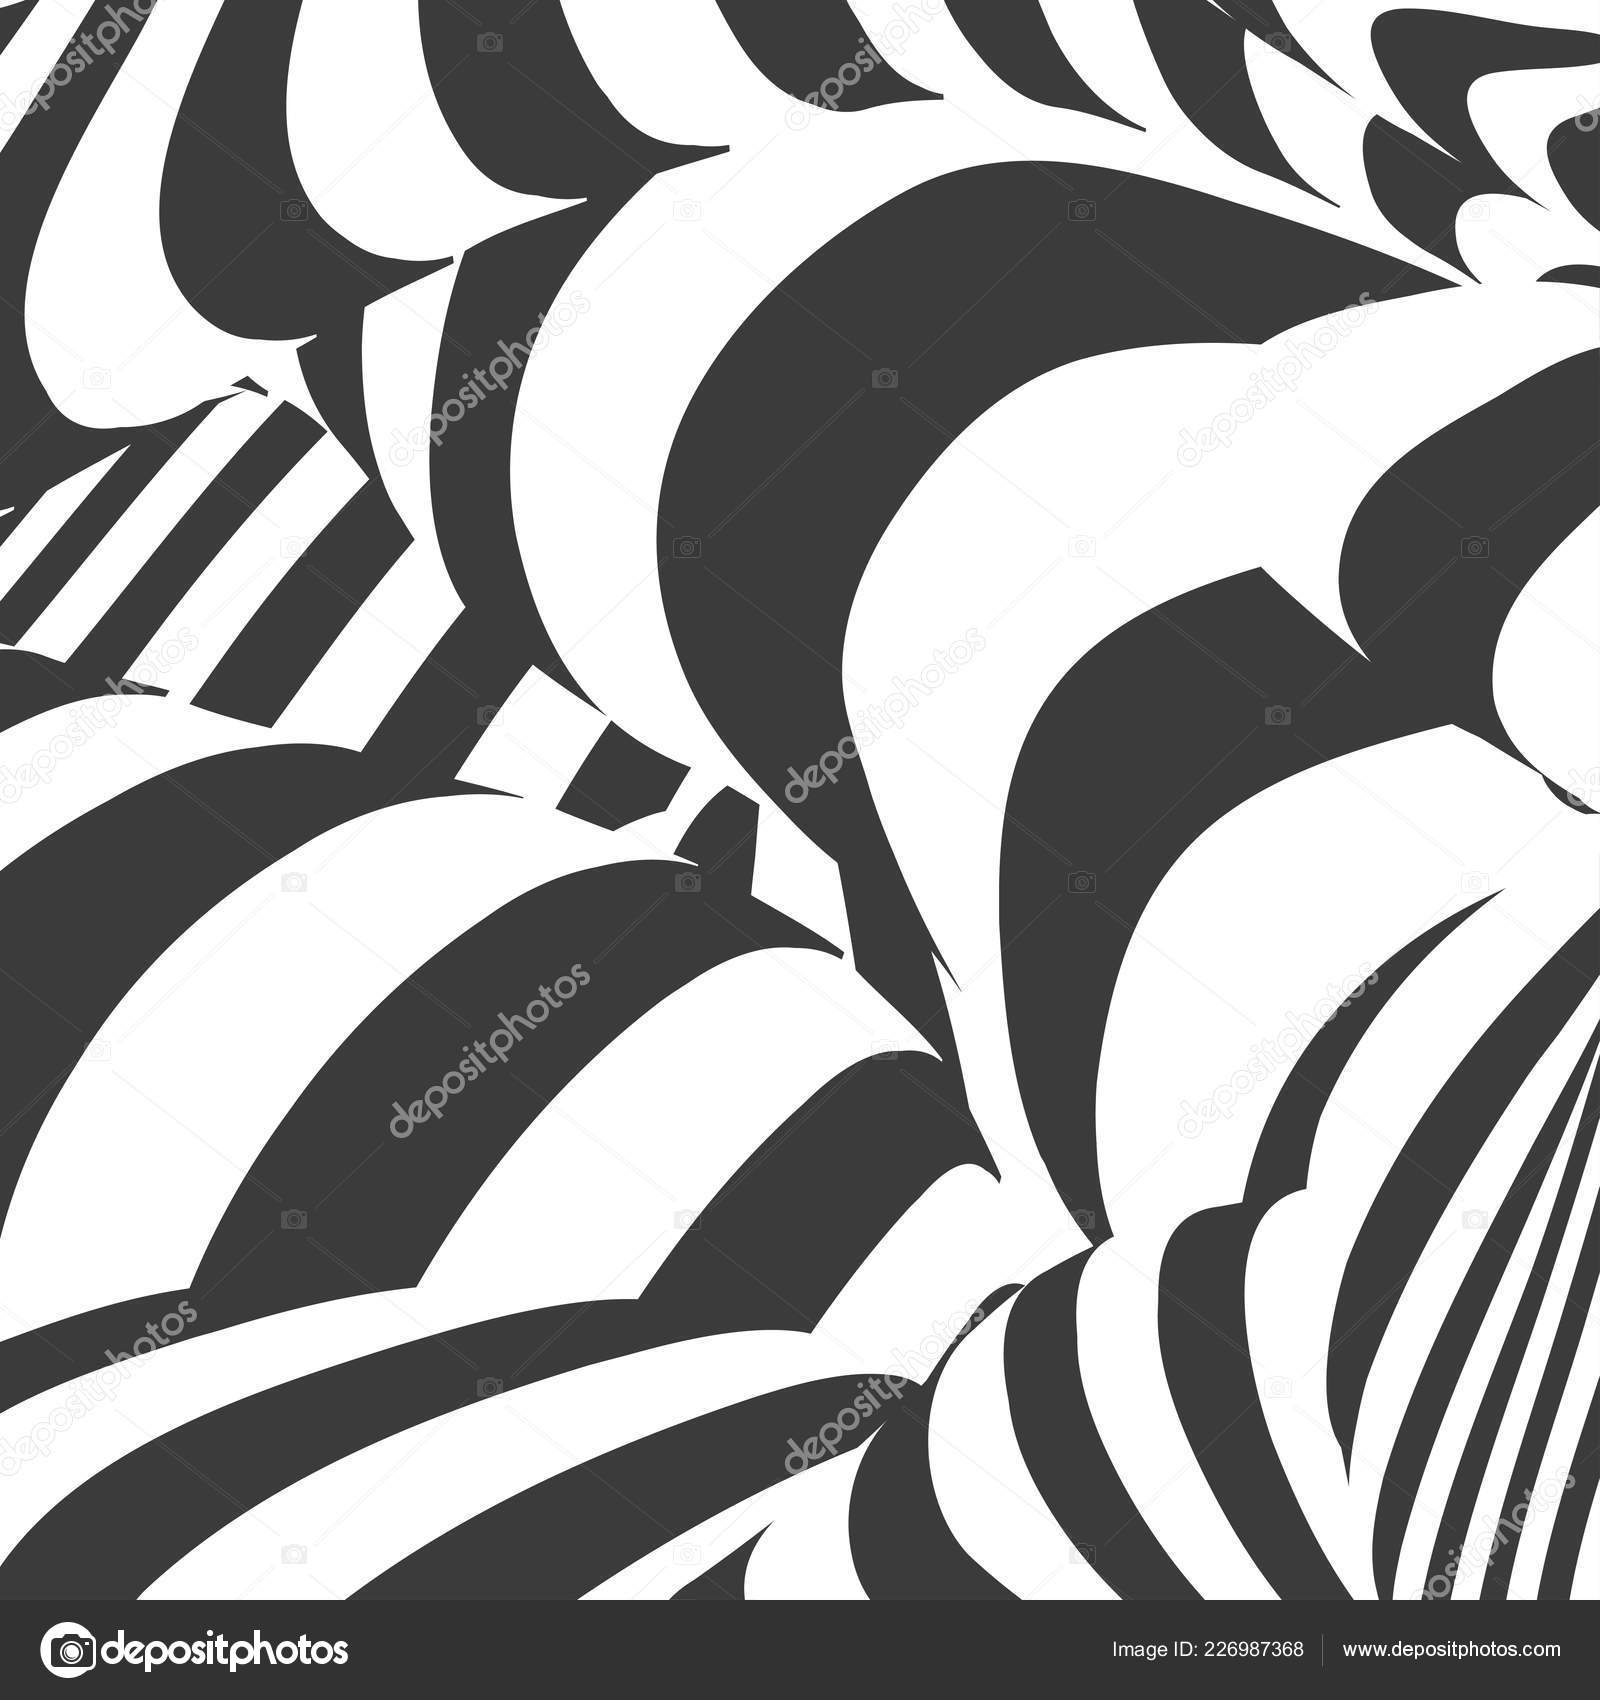 Black and white design abstract striped background optical illusion effect geometric tile in op art style vector illusive background texture